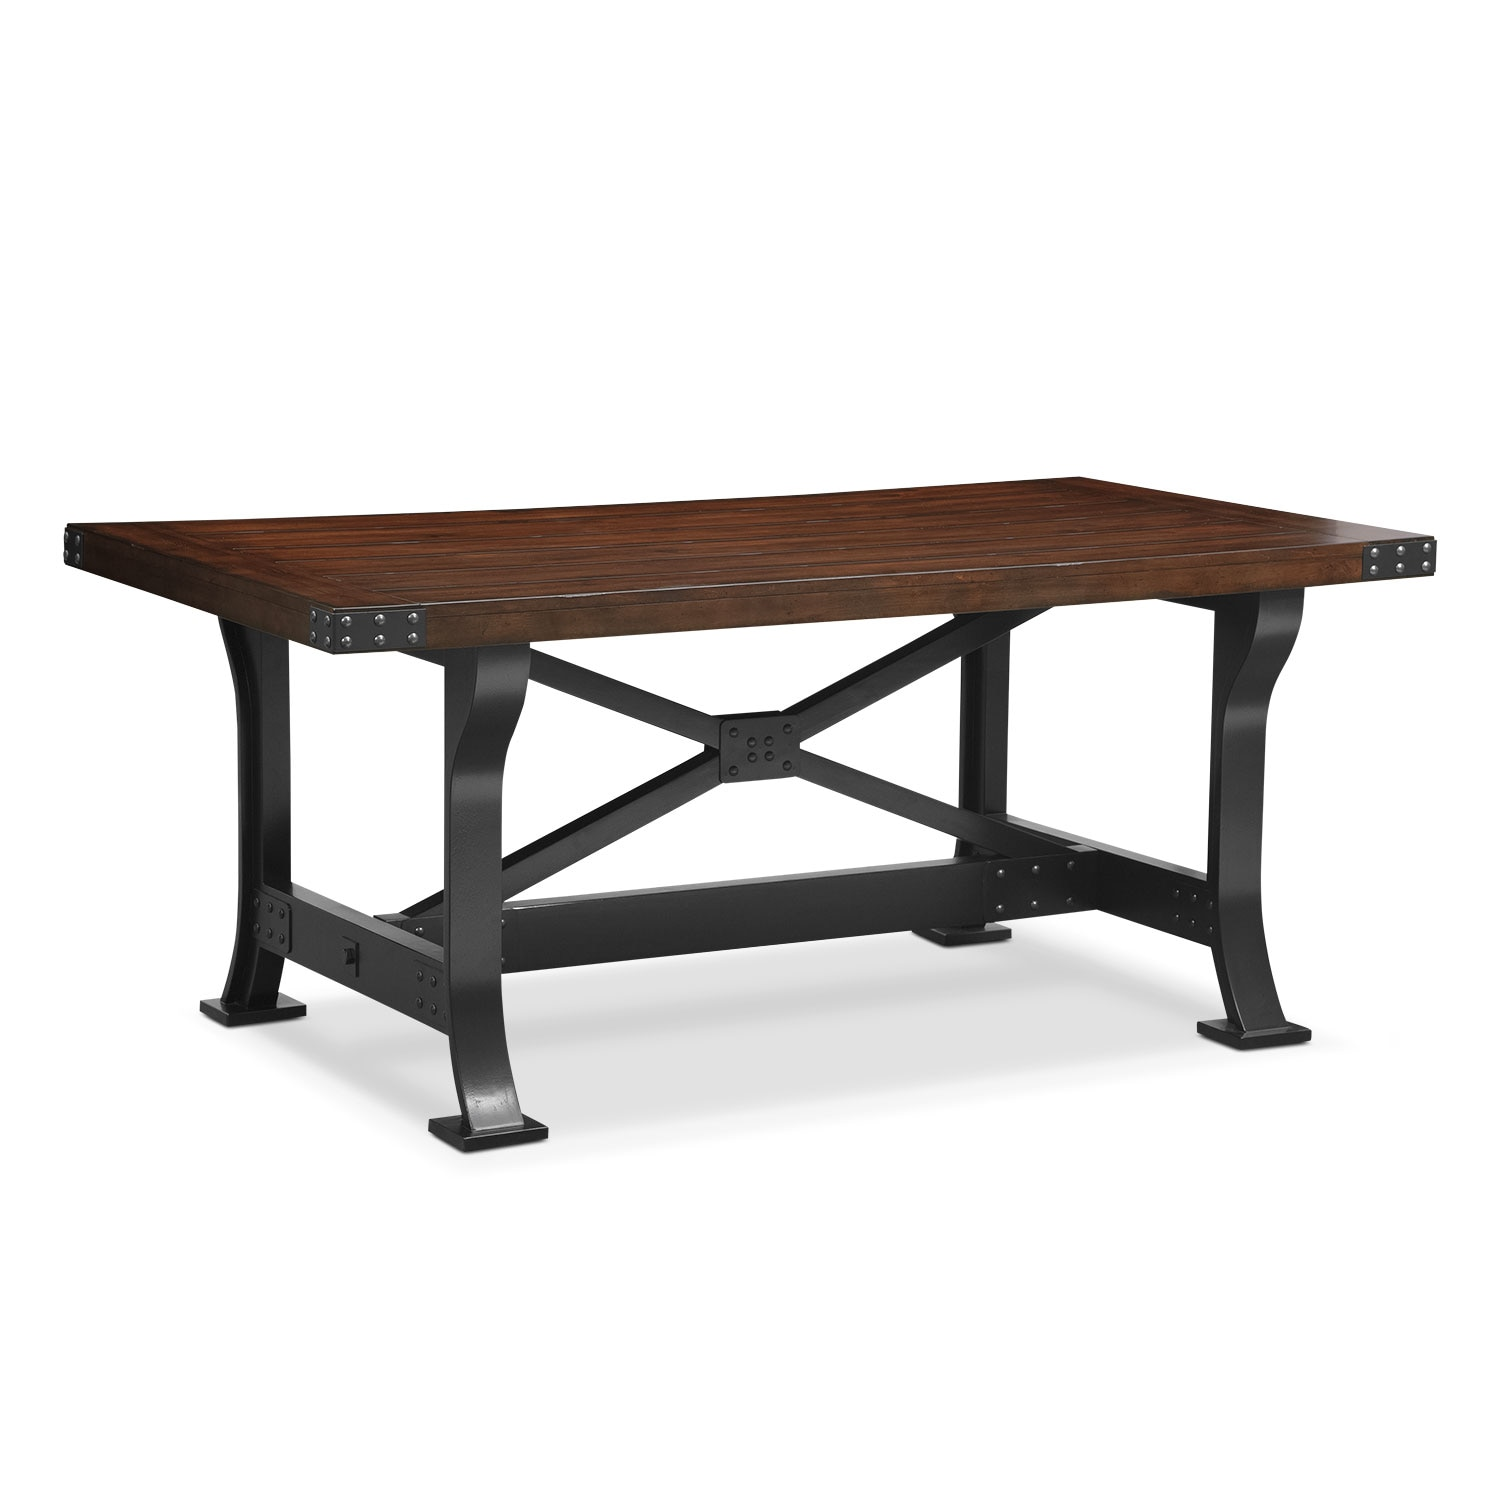 Newcastle standard height dining table american for Dining room table height